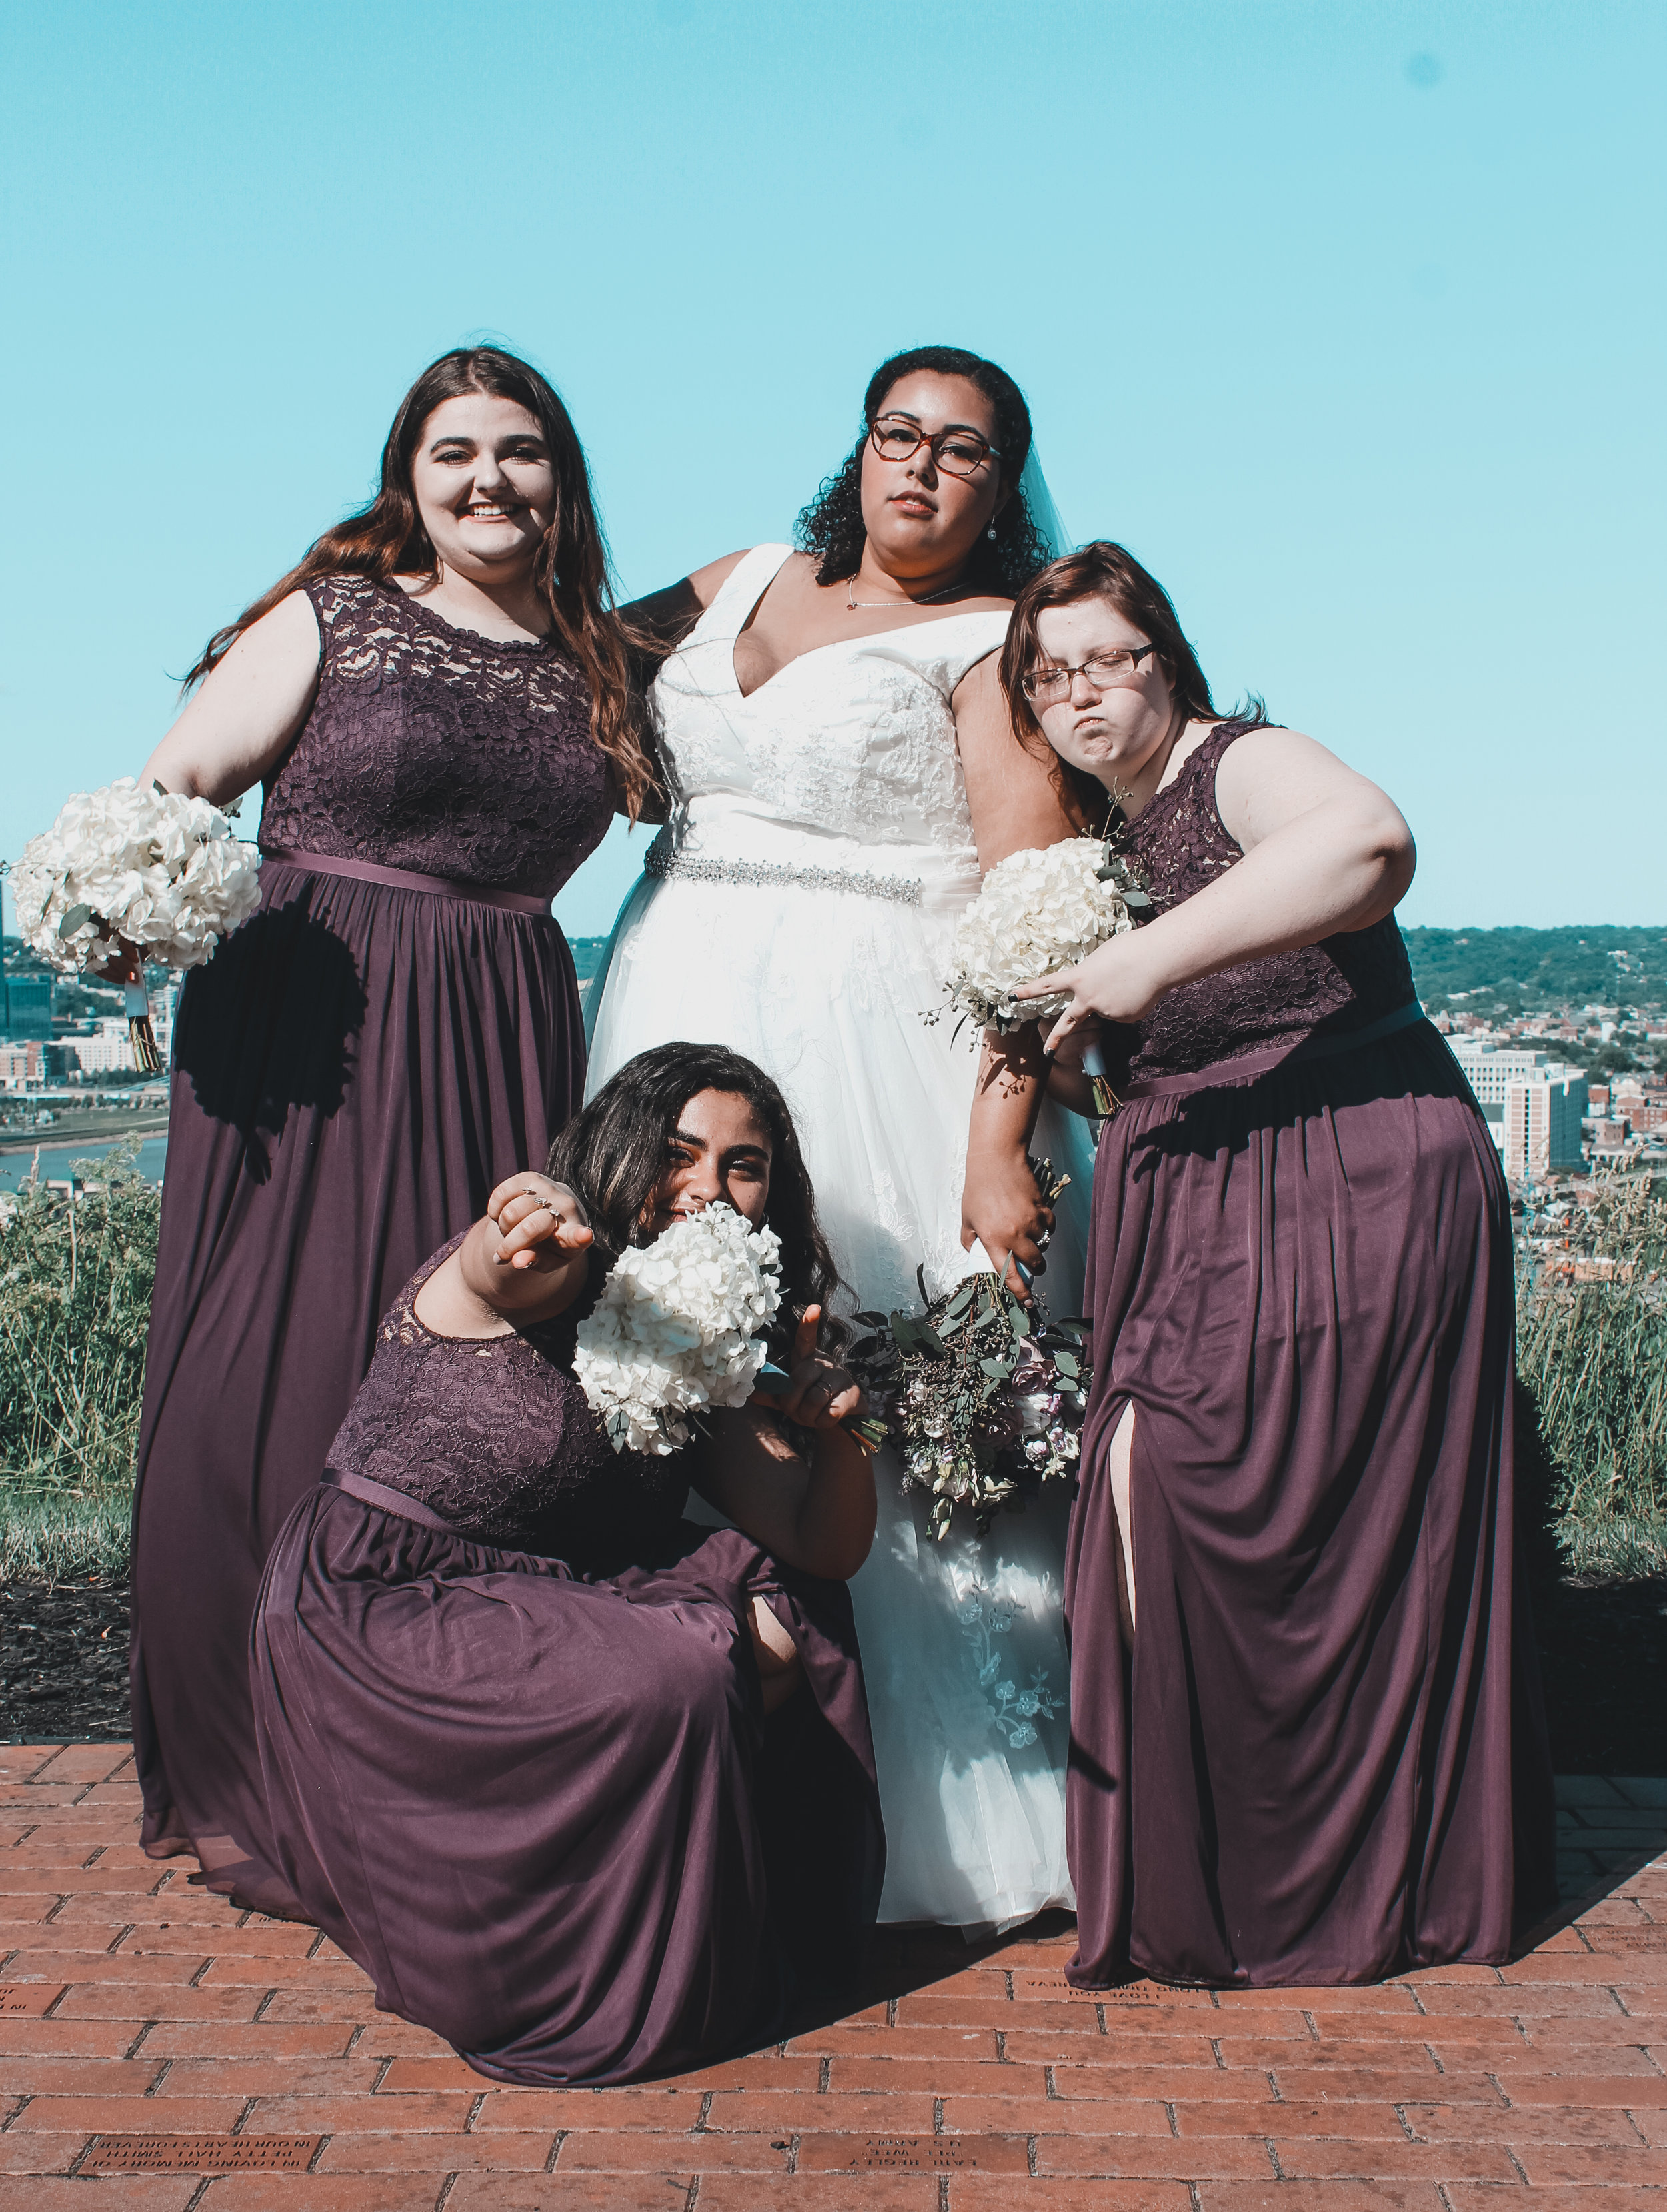 Corrie S. (Bride) and her bridesmaids